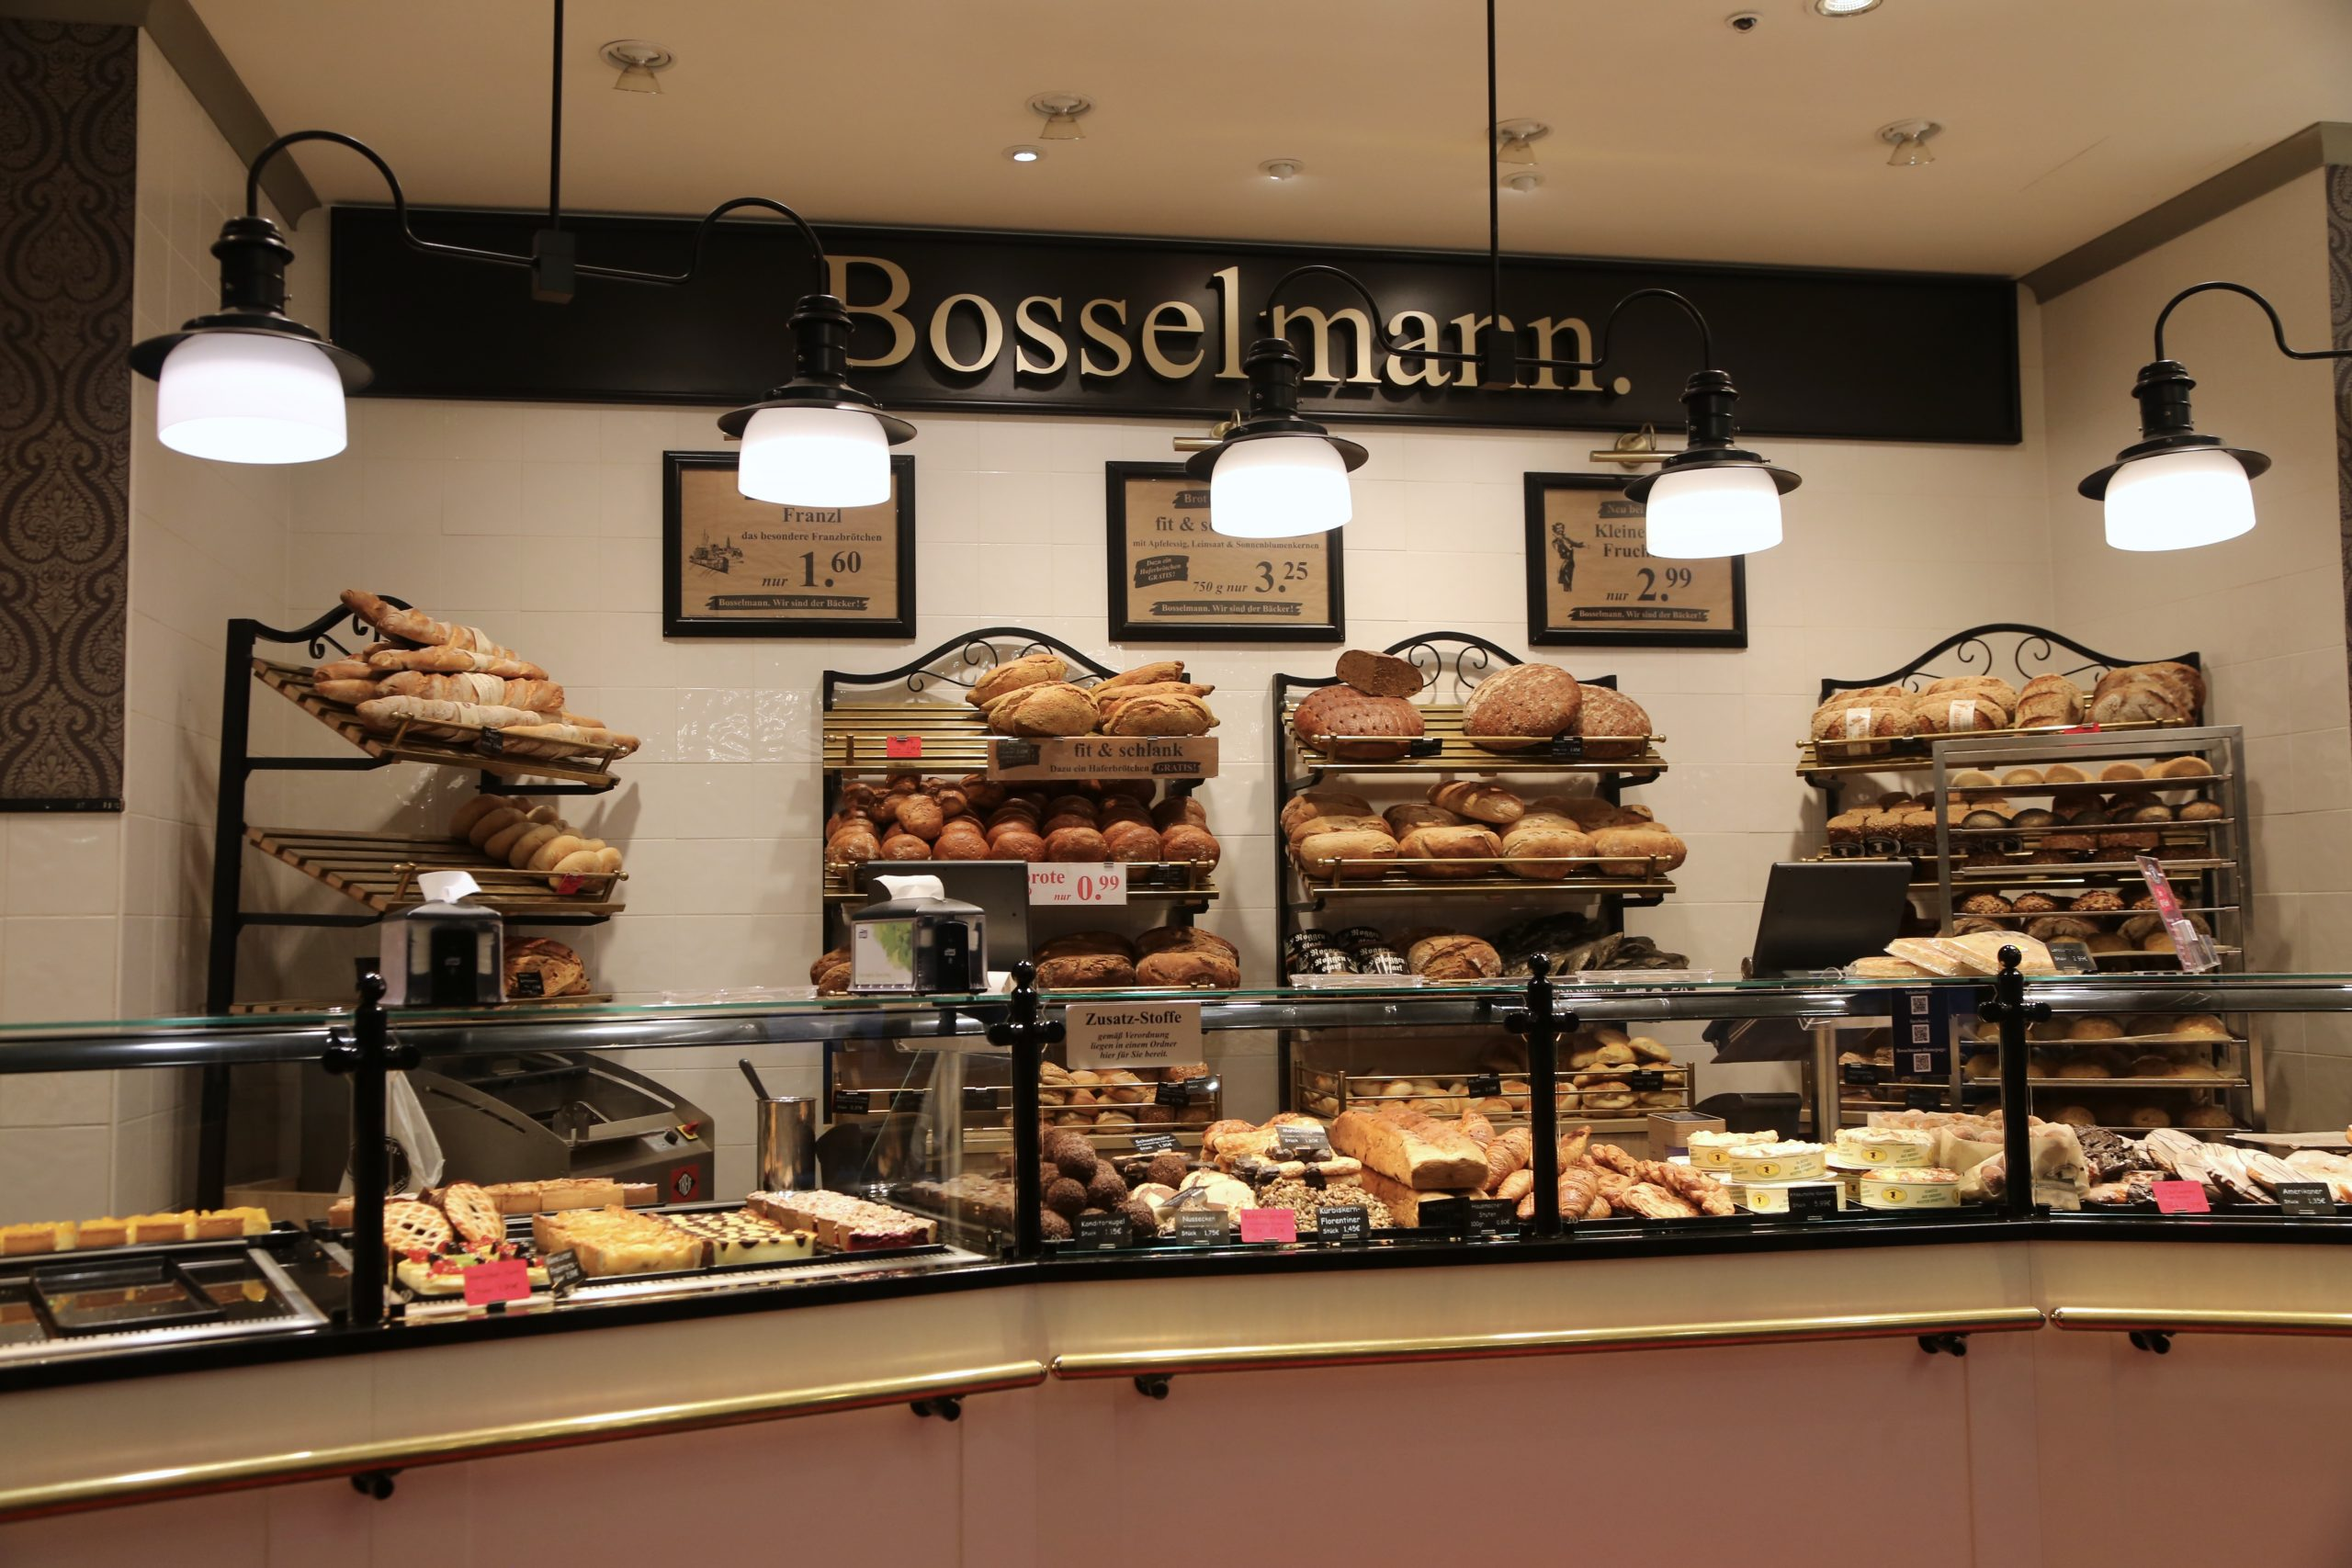 Bosselmann, an amazing German bakery chain